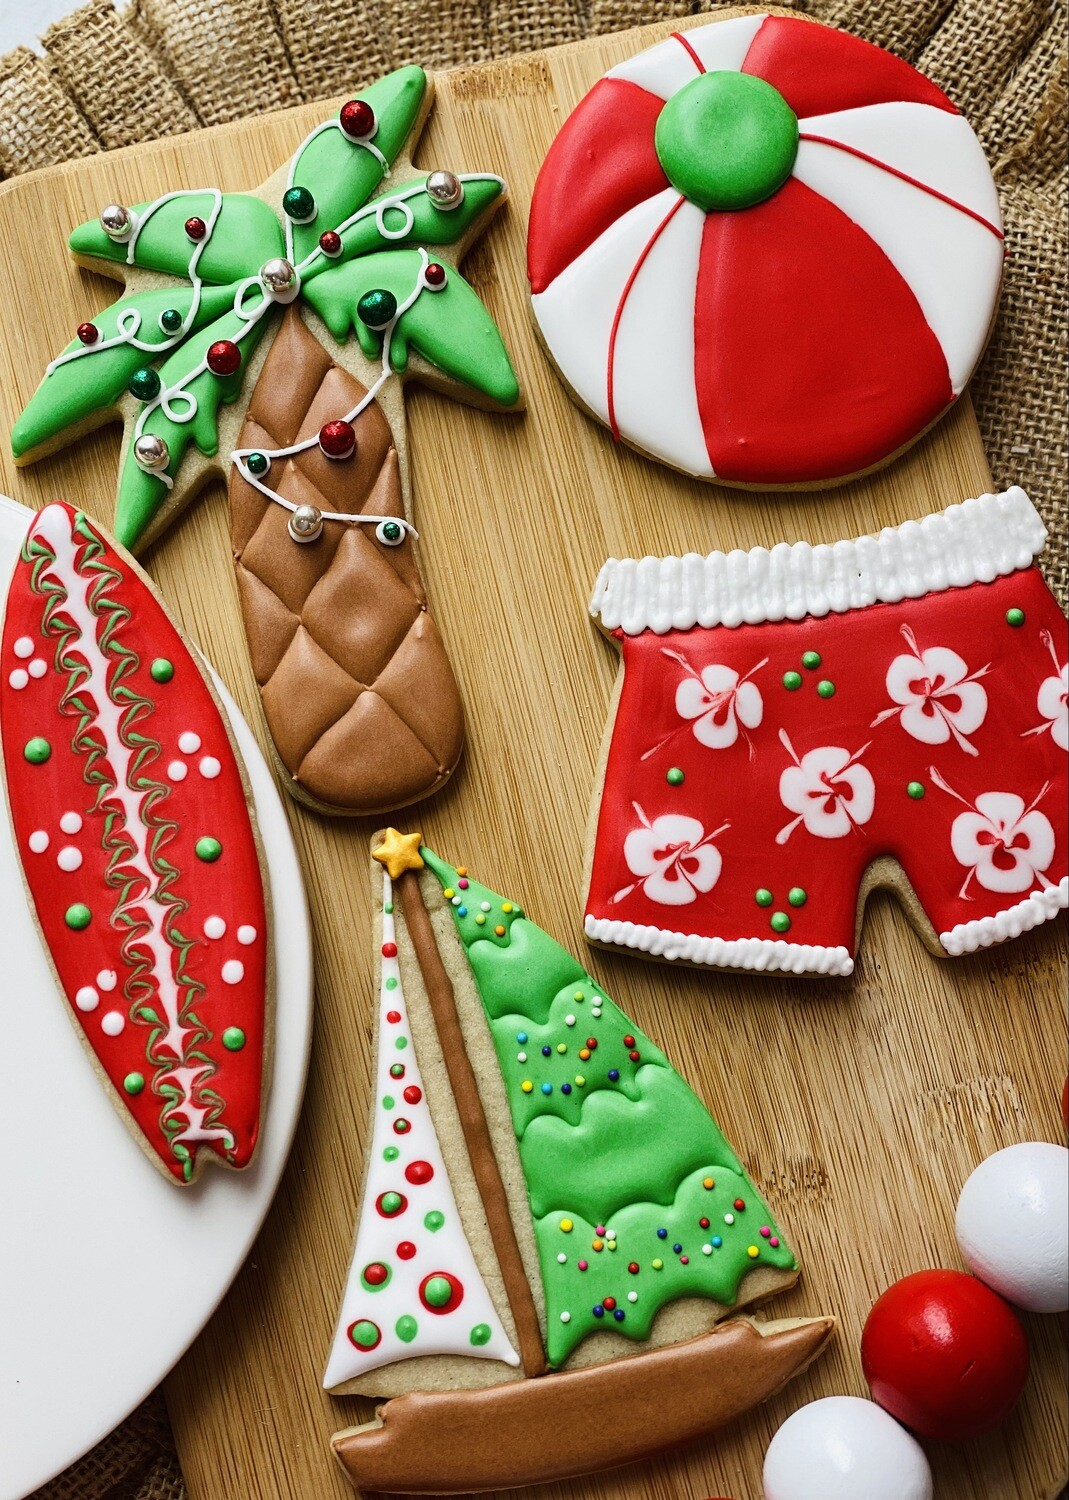 Christmas in July  Cookie Decorating Workshop Sunday, July 25, 2:00 - 5:00pm